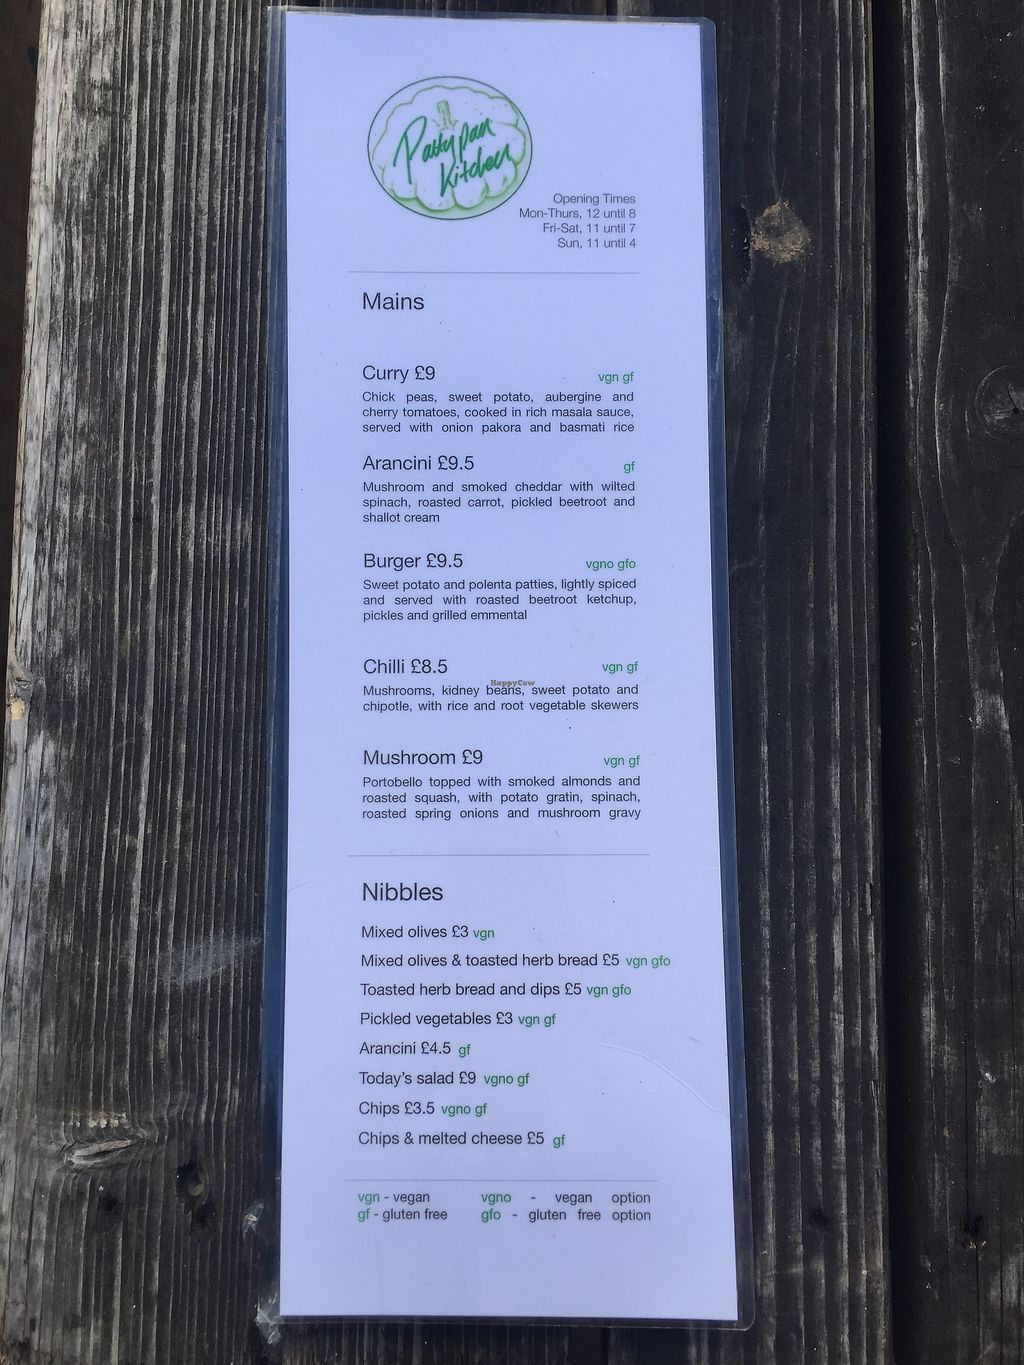 """Photo of Pattypan Kitchen at The Victory Pub  by <a href=""""/members/profile/greedyveganmama"""">greedyveganmama</a> <br/>Menu <br/> September 24, 2017  - <a href='/contact/abuse/image/100701/307701'>Report</a>"""